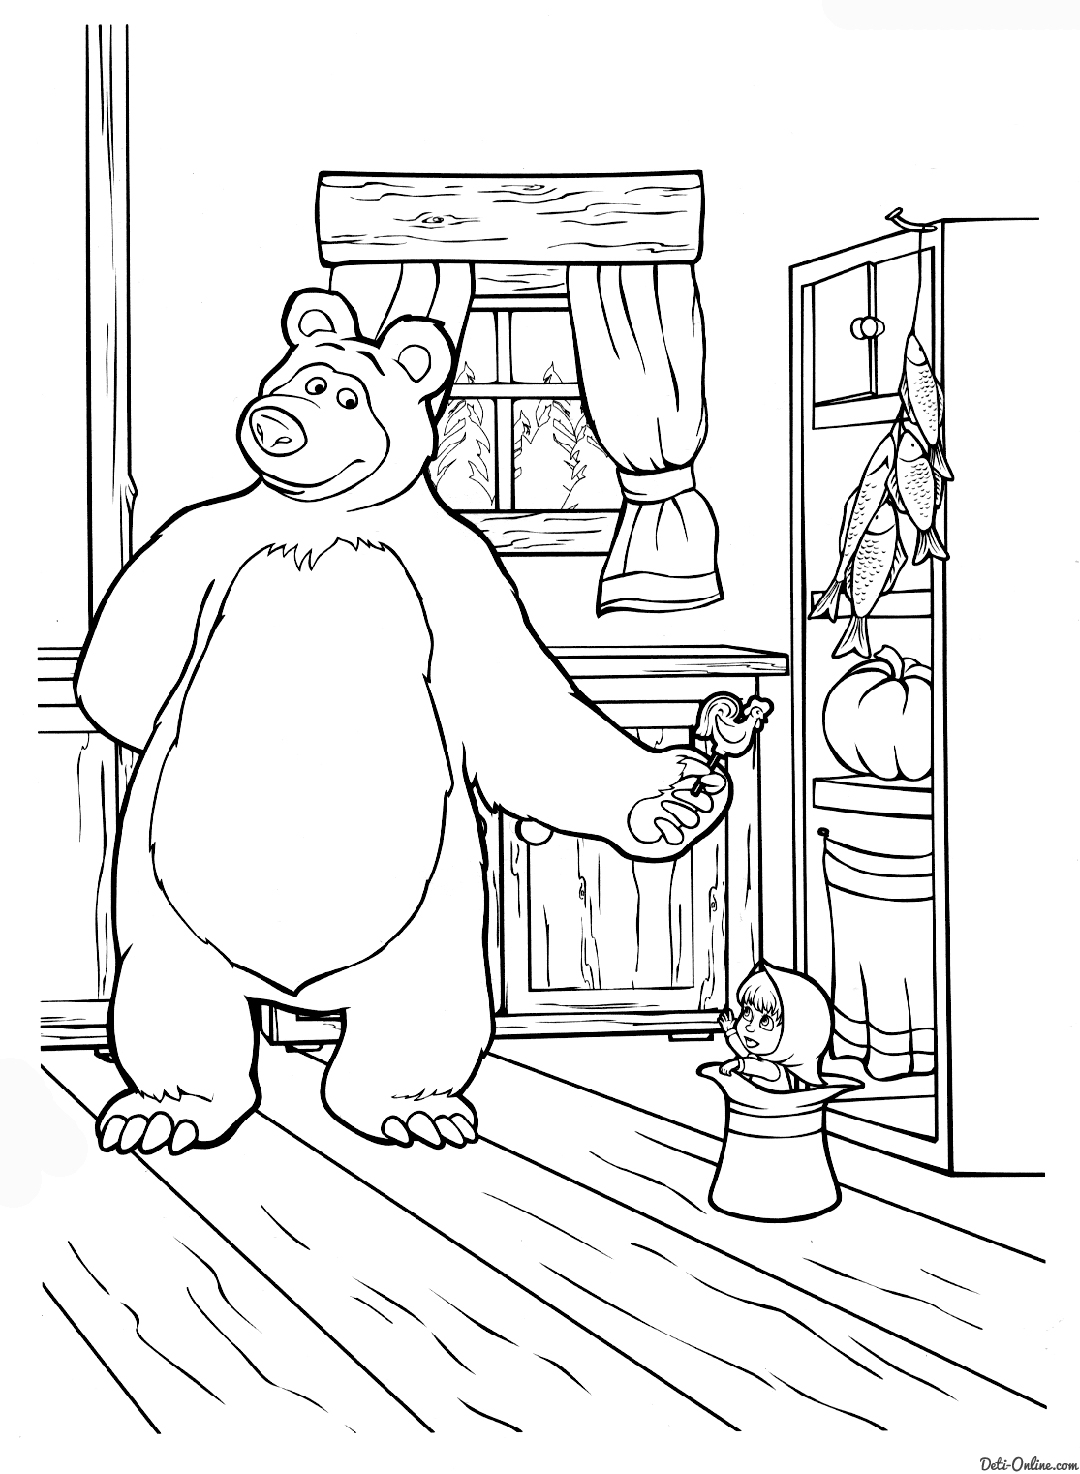 masha-and-the-bear coloring page,printable,coloring pages